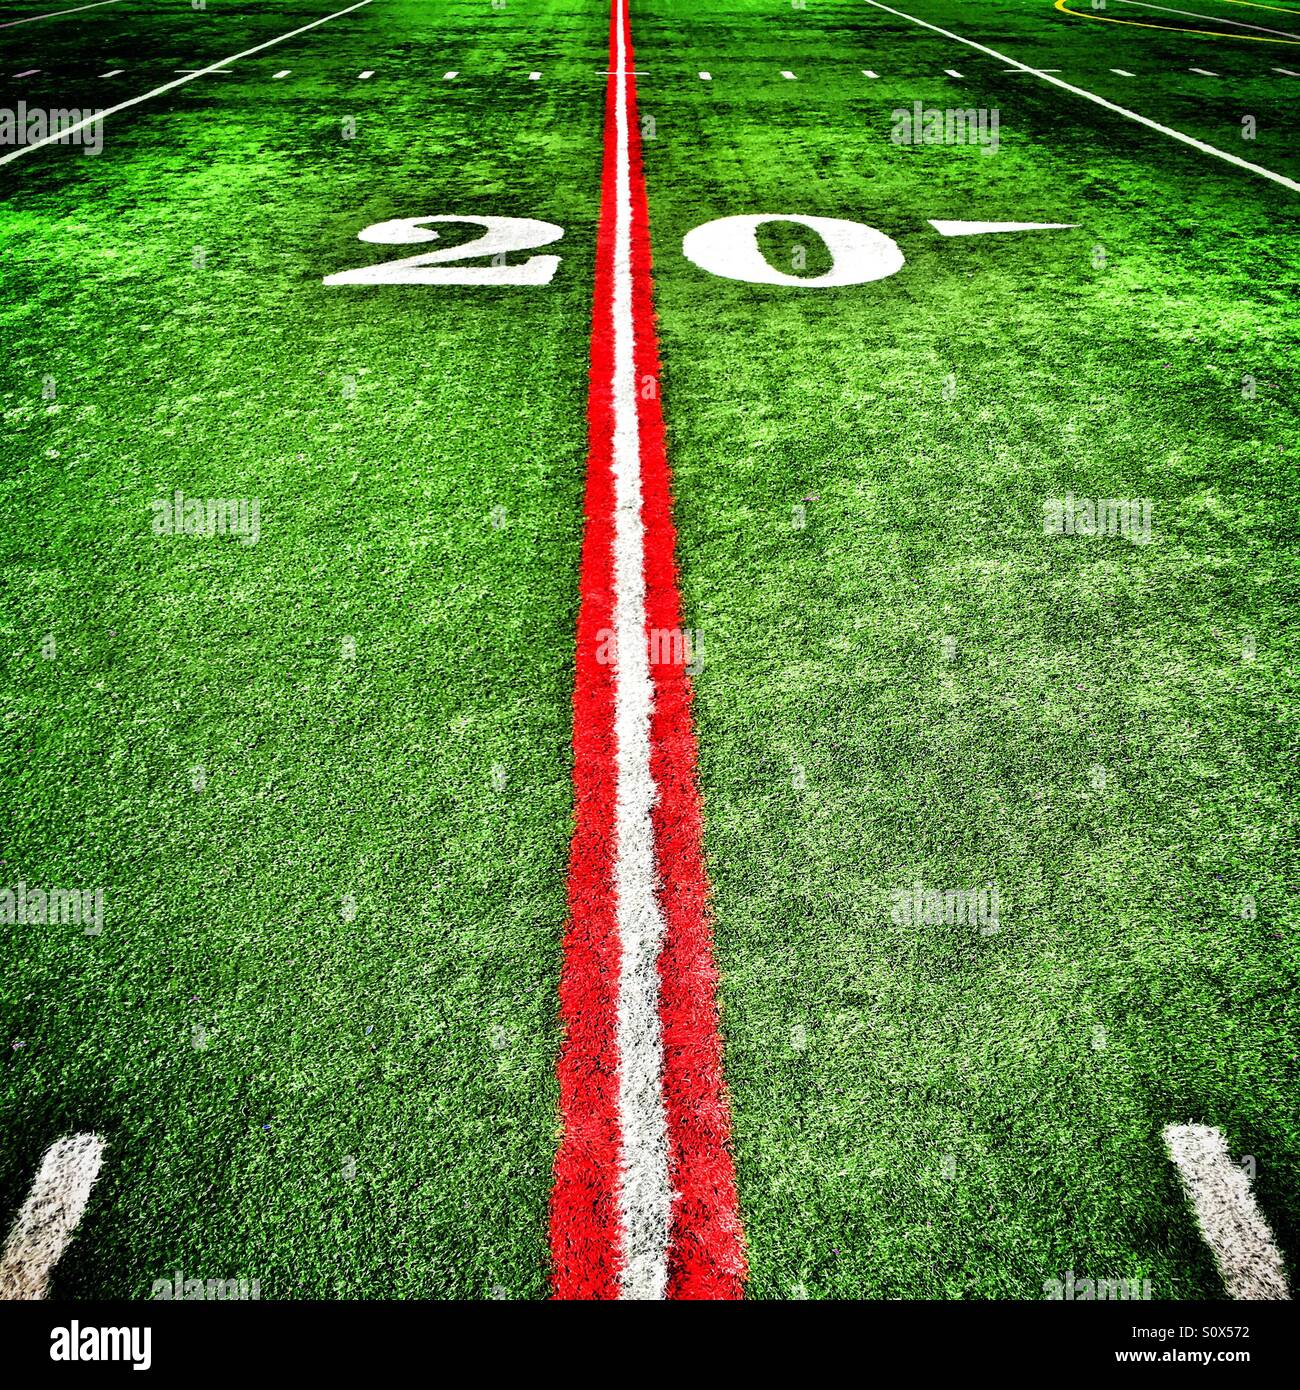 Twenty yard line painted red on an American football field - Stock Image